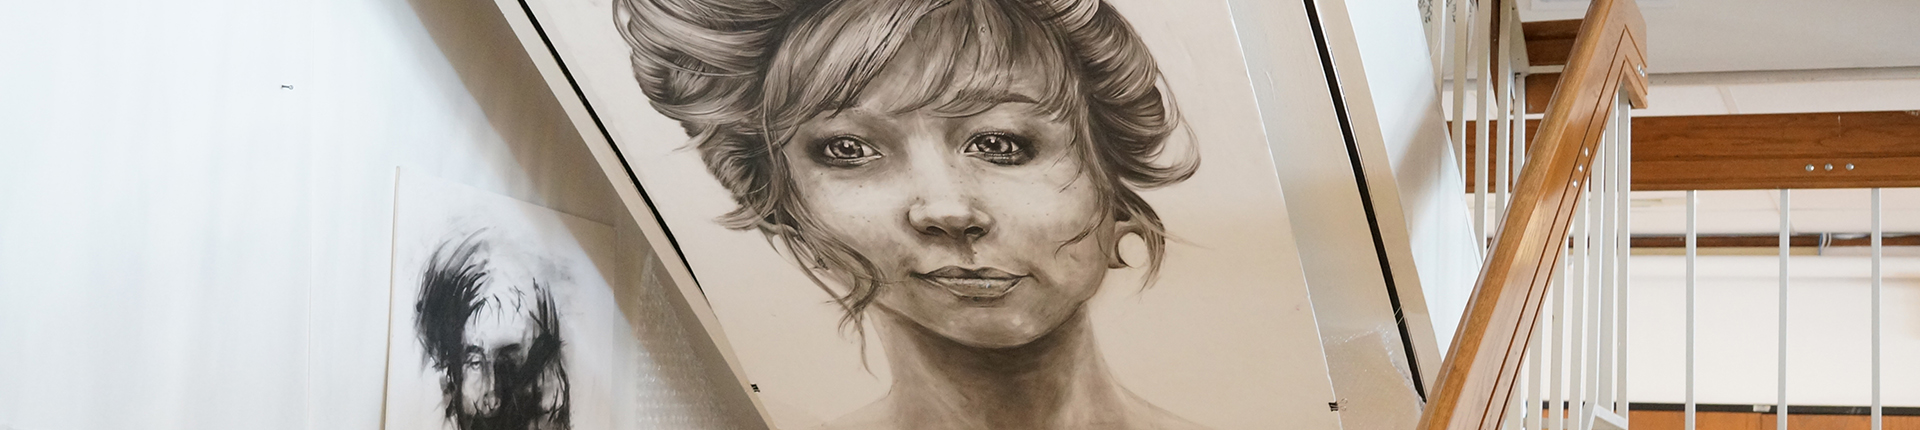 Pencil drawing hanging in staircase